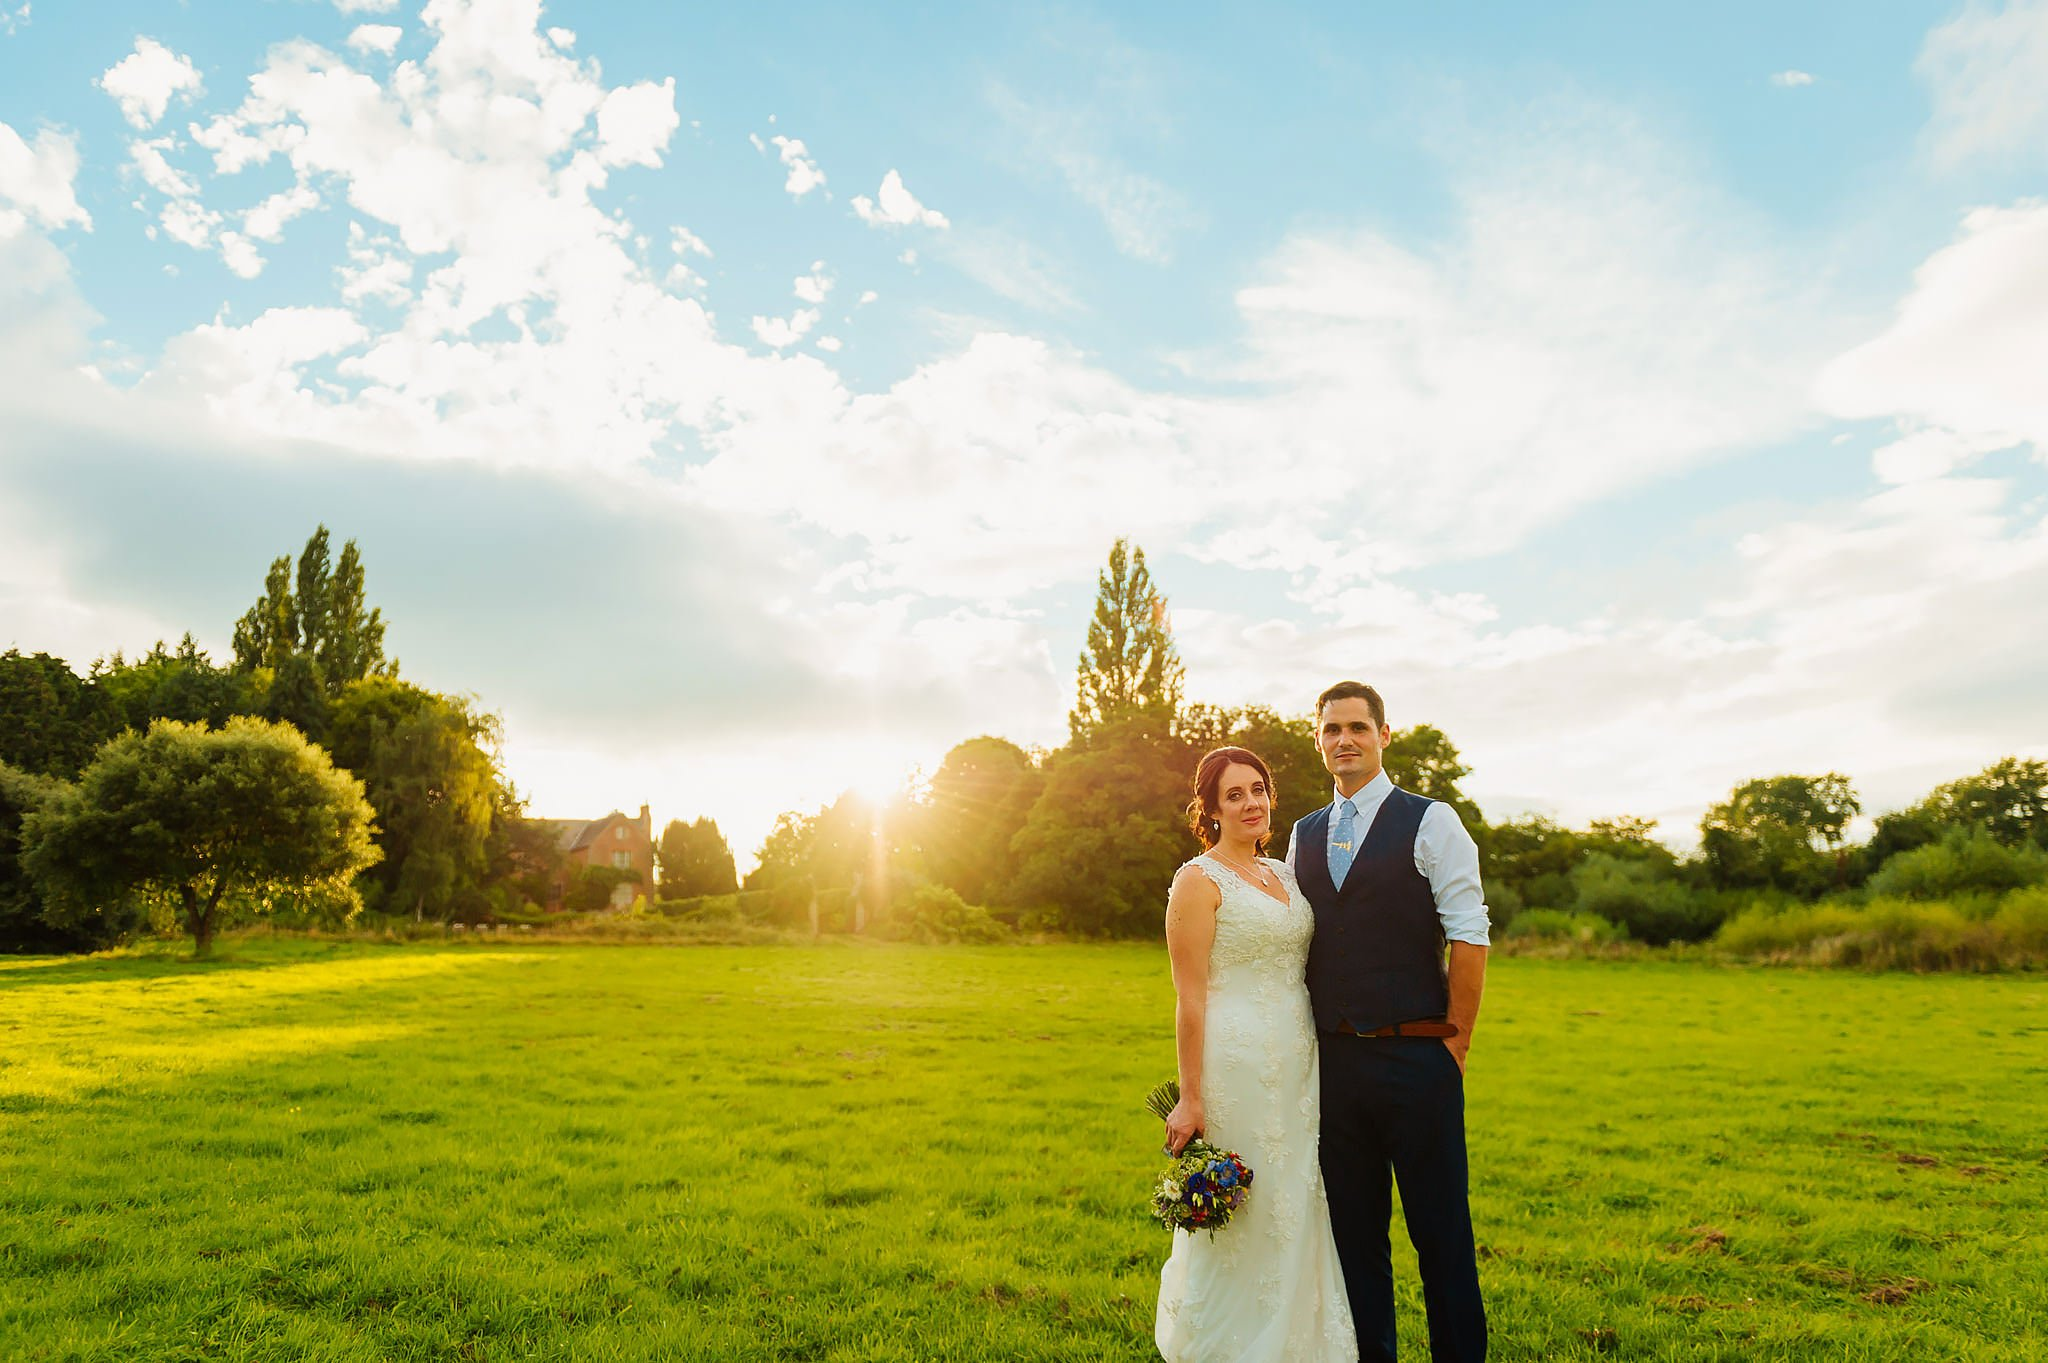 Wedding photography at Hellens Manor in Herefordshire, West Midlands | Shelley + Ian 102